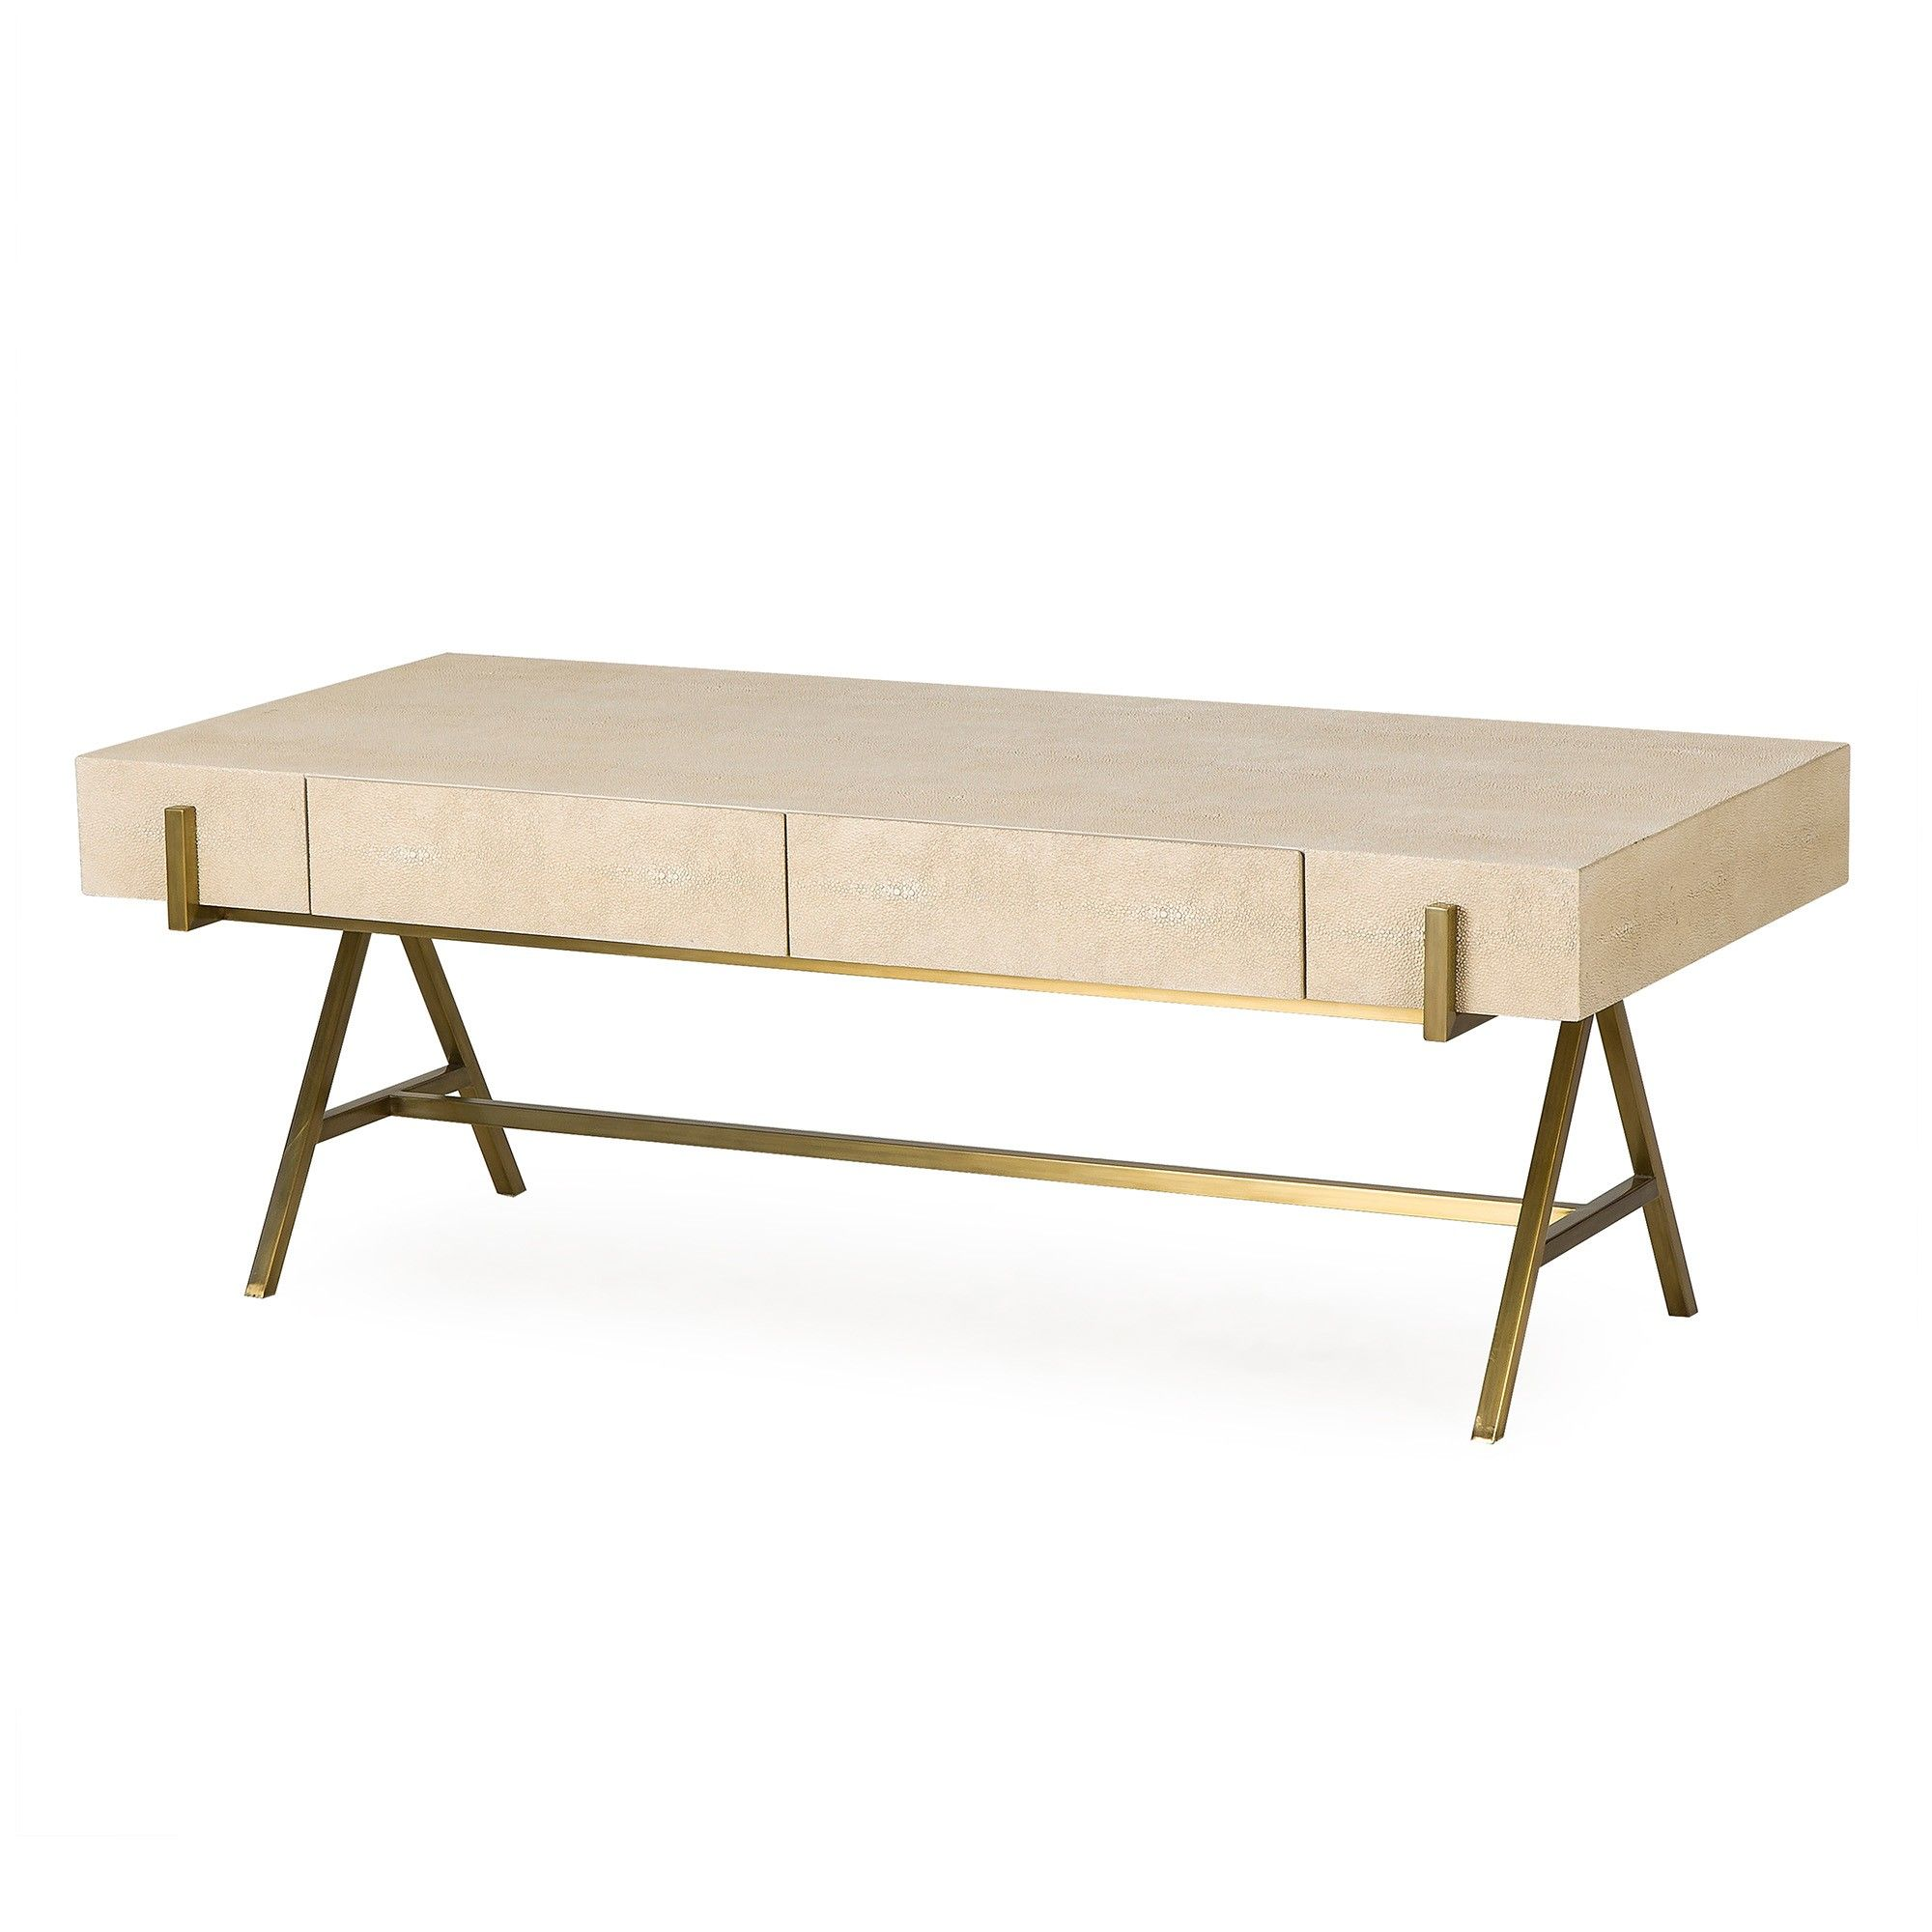 Delilah Coffee Table Furniture Products Curated Kravet Coffee Table Furniture Coffee Table Furniture [ 2000 x 2000 Pixel ]